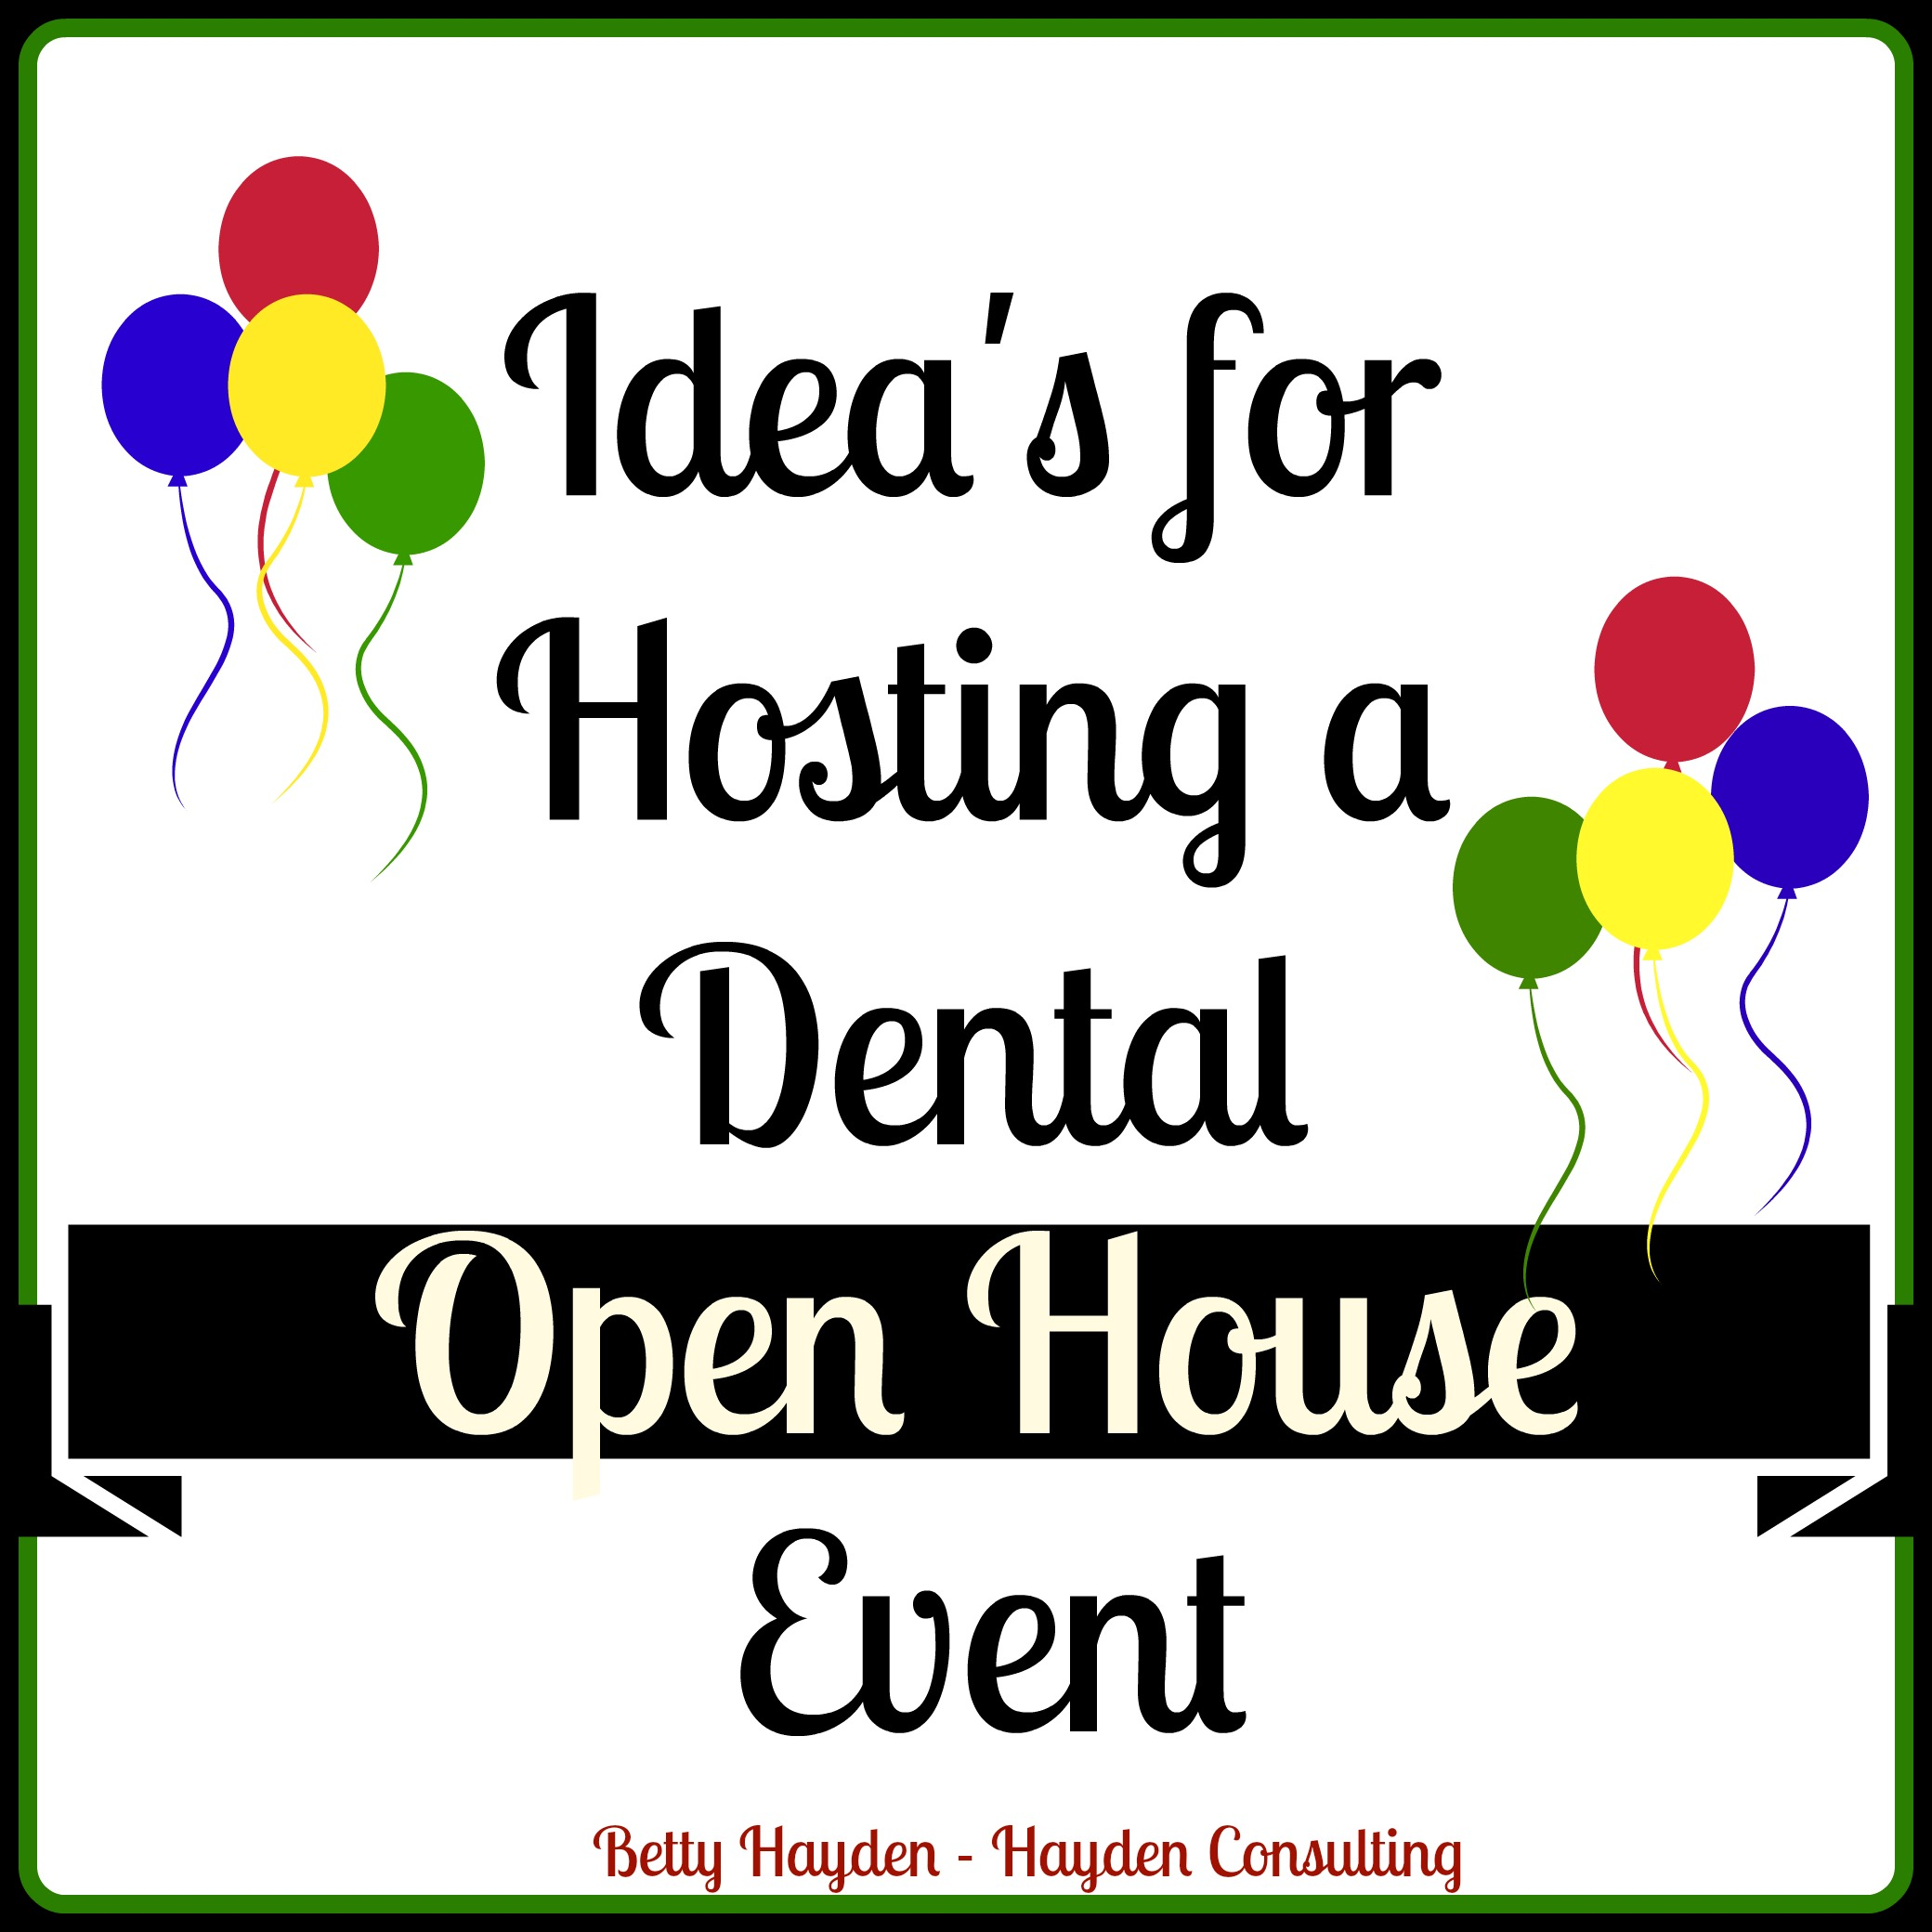 Open House Event Hayden Consulting Where Your Success In Business And Life Matters